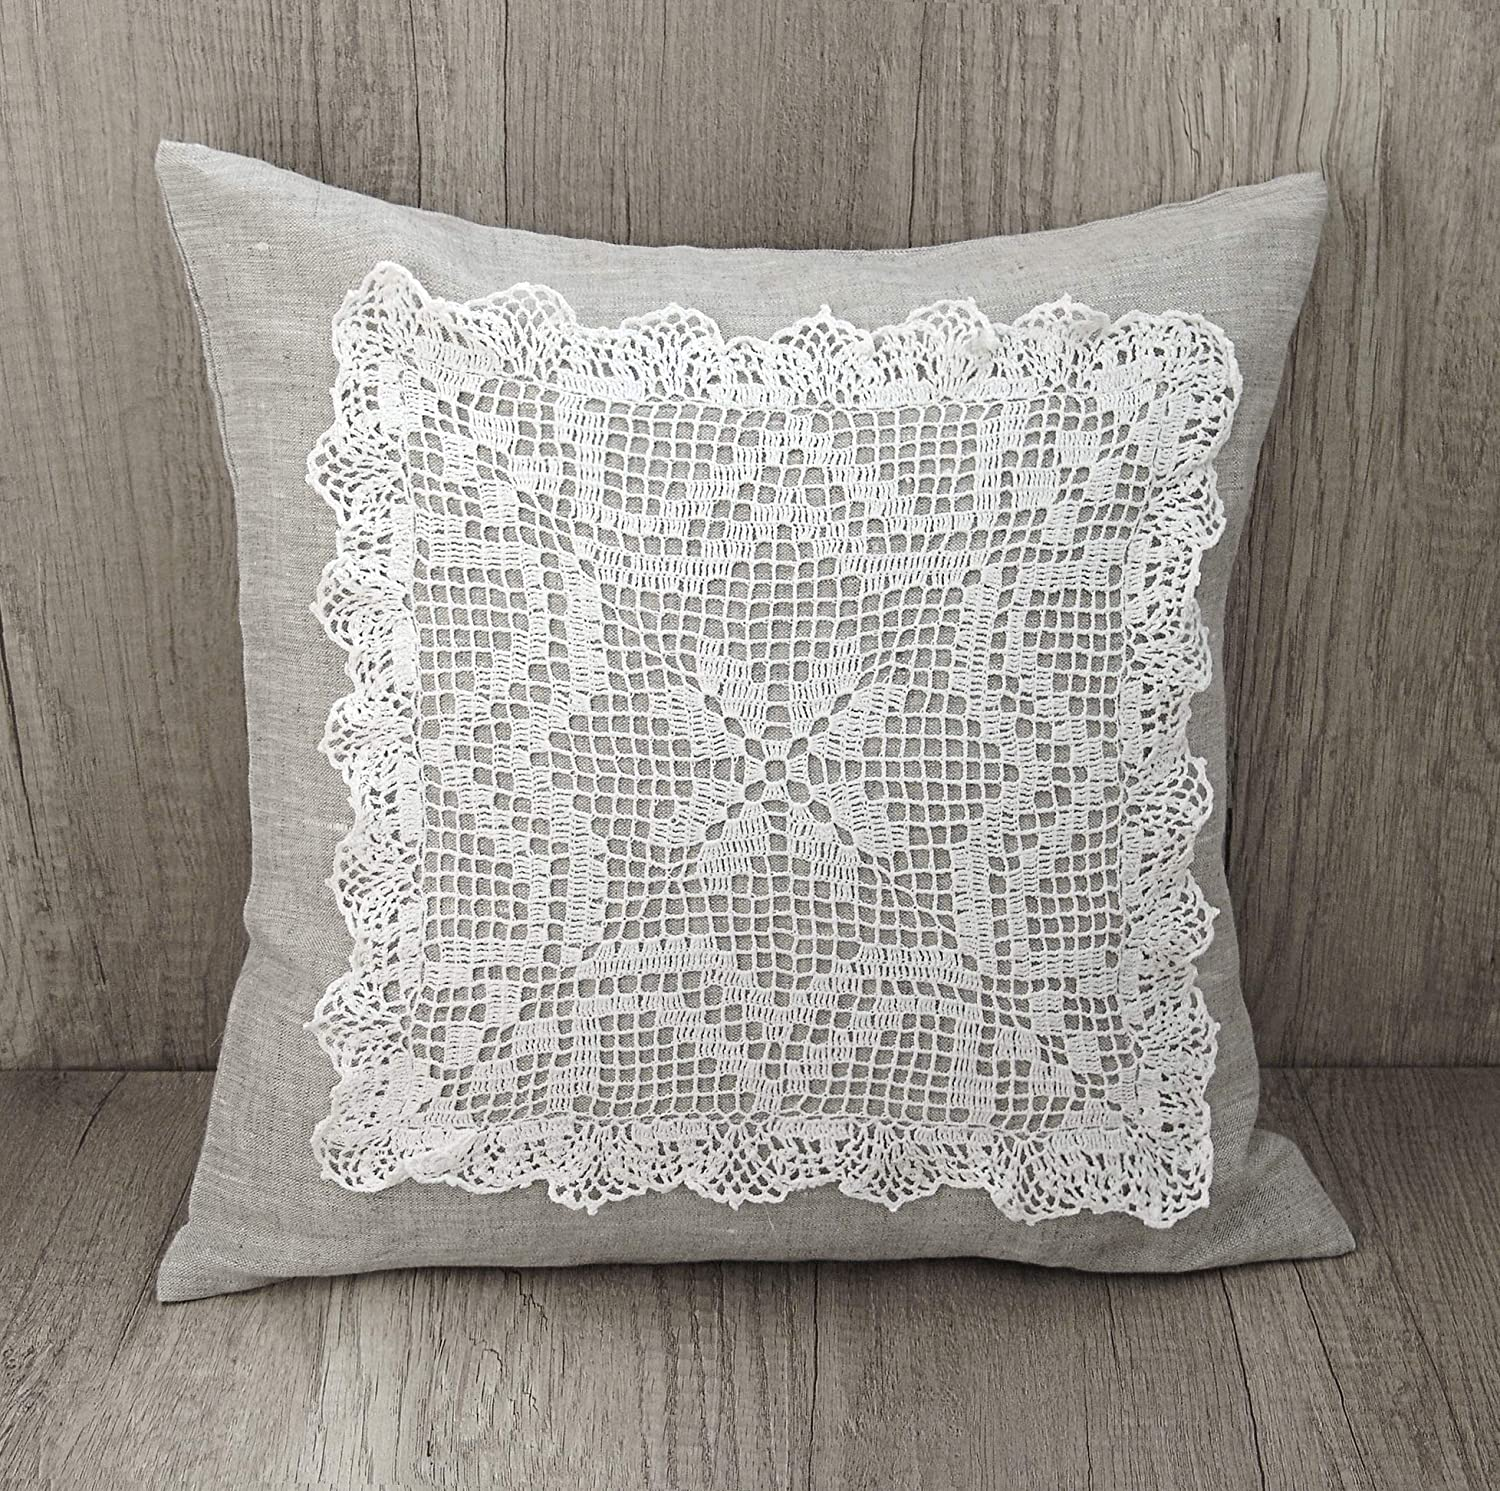 Amazoncom Crochet Embroidery Throw Pillow Cover Gray Decorative